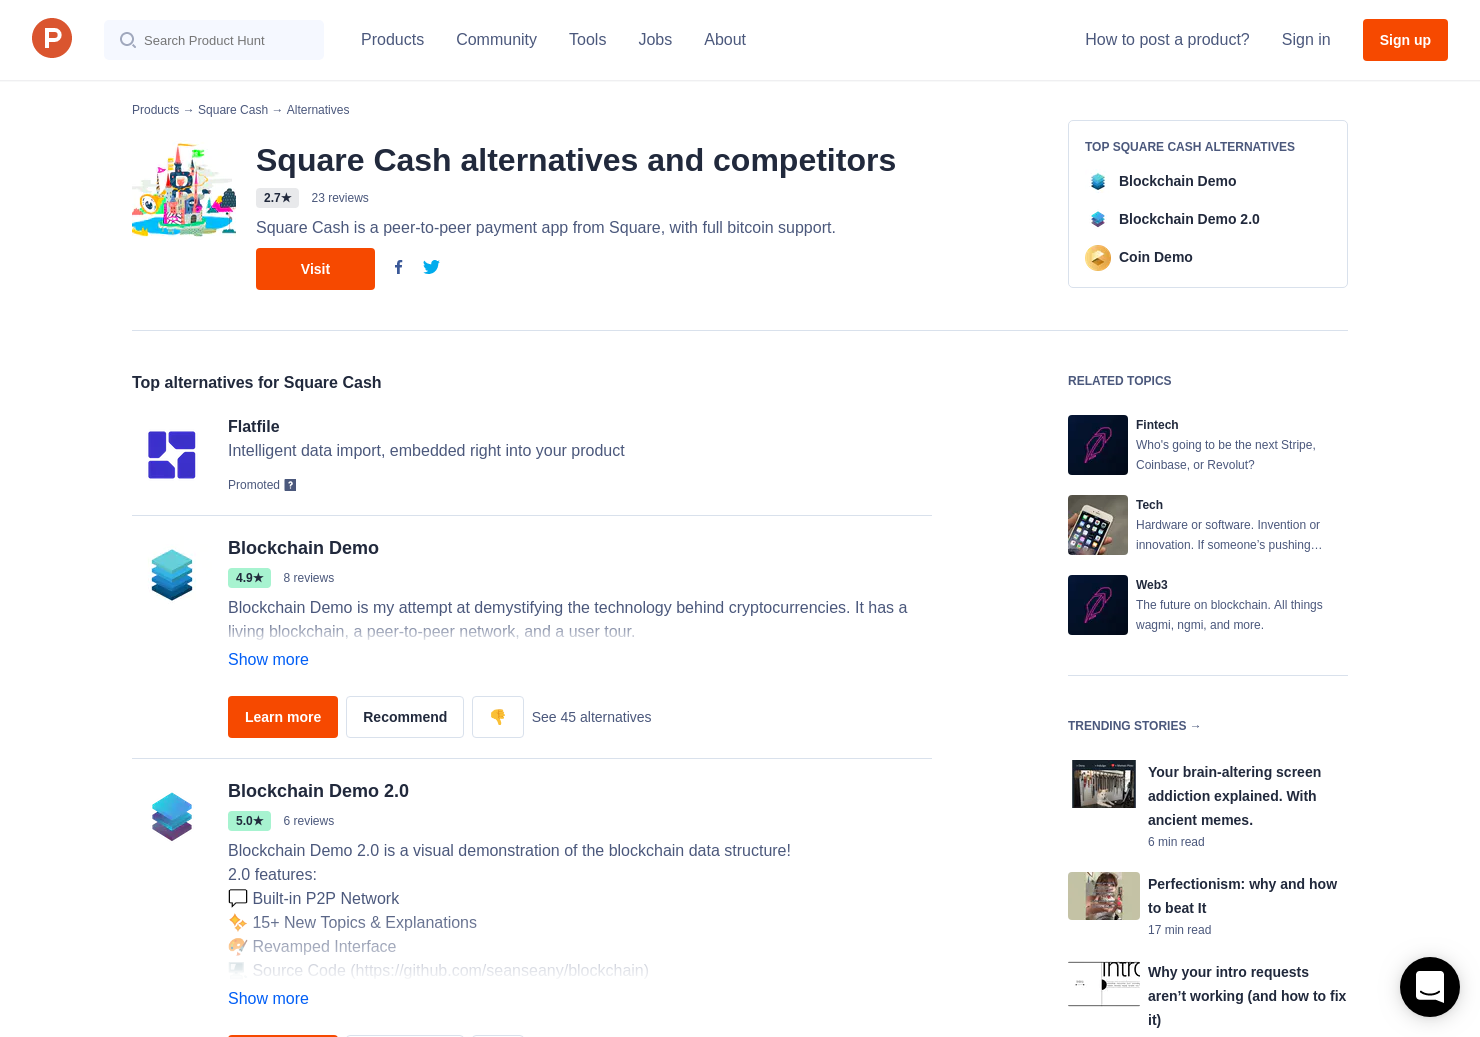 15 Alternatives to Square Cash | Product Hunt